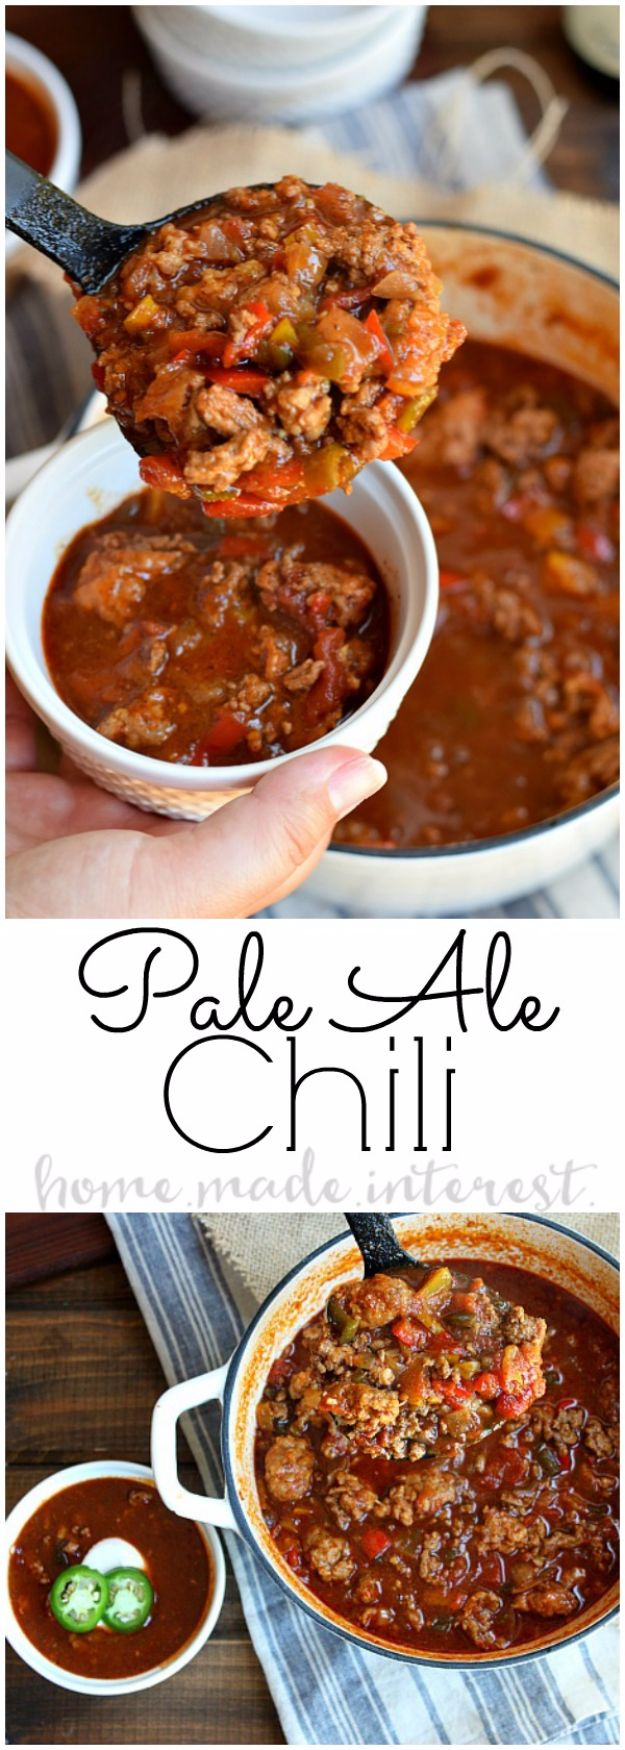 Best Recipes Made With Beer - Easy Stovetop Pale Ale Chili - Easy Dinner, Lunch and Snack Recipe Ideas Made With Beer - Food for the Slow Cooker and Crockpot, Meat and Chicken Dishes, Appetizers, Homemade Pretzels, Summer BBQ Sauces and PArty Food Ideas